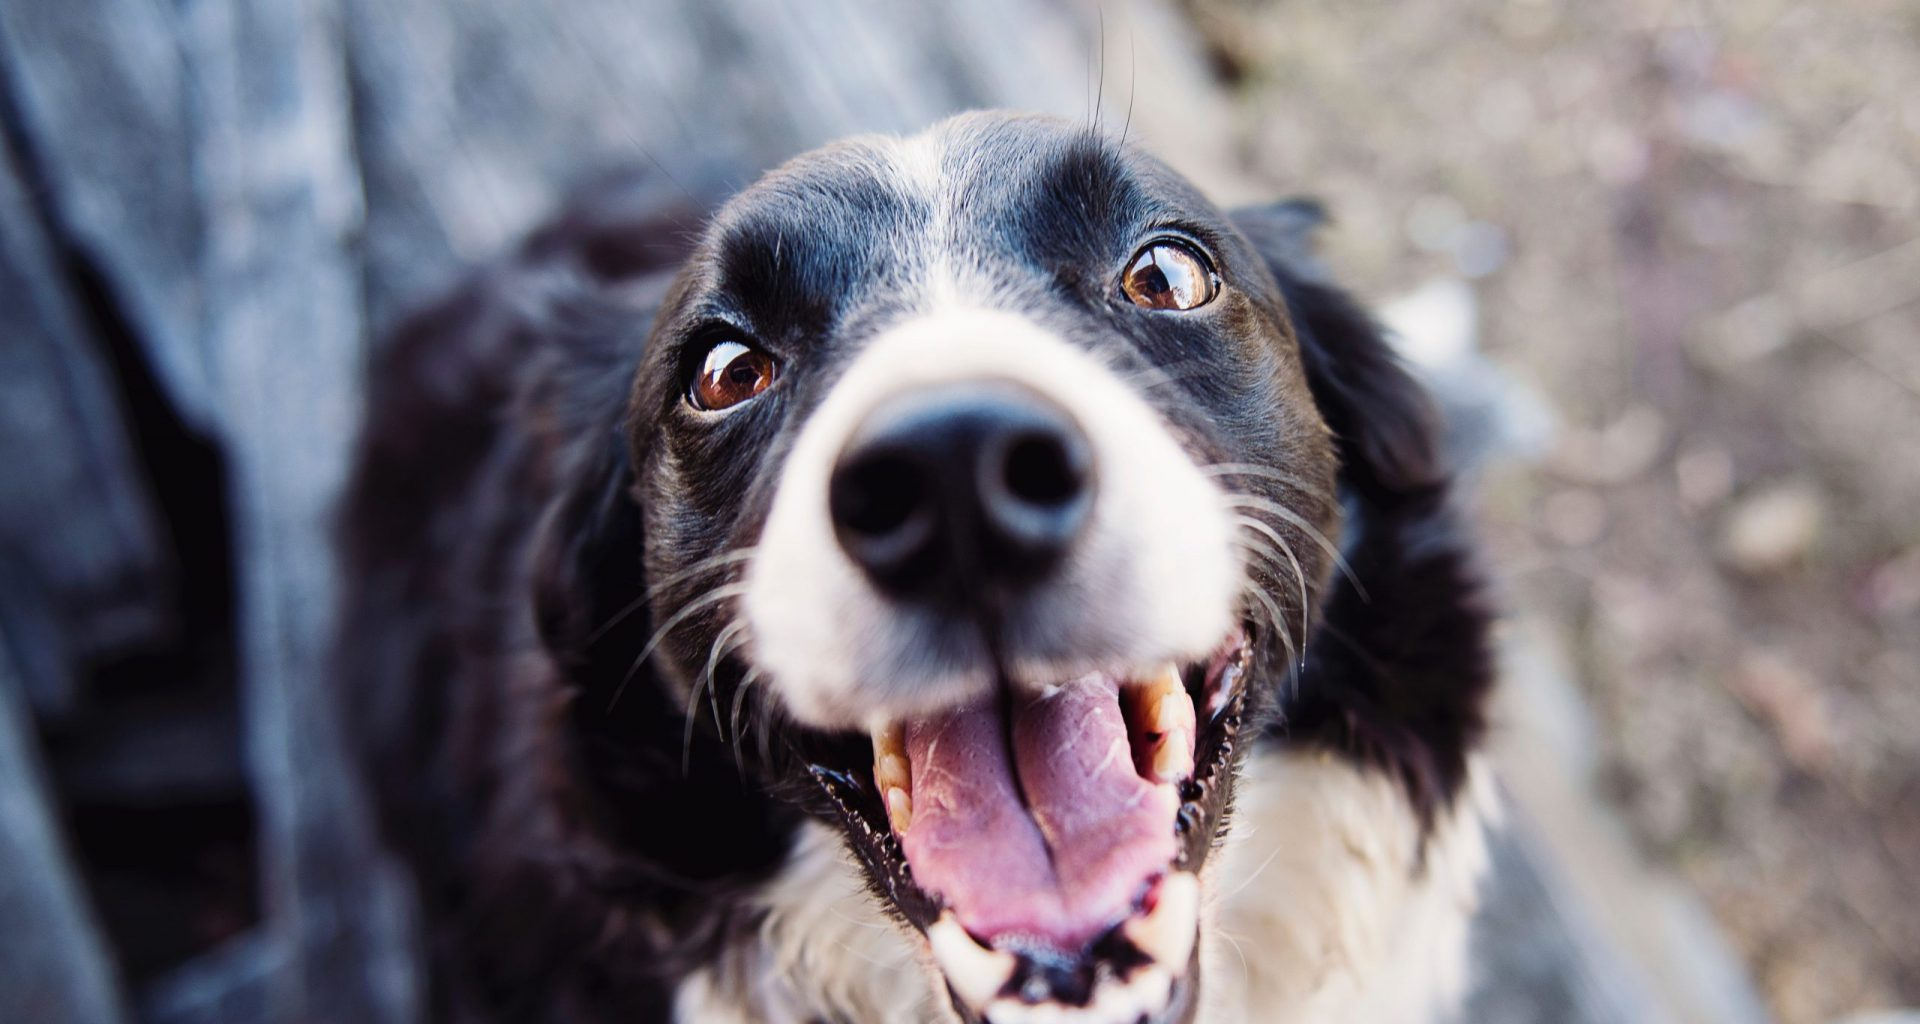 animal-blur-canine-close-up-551628